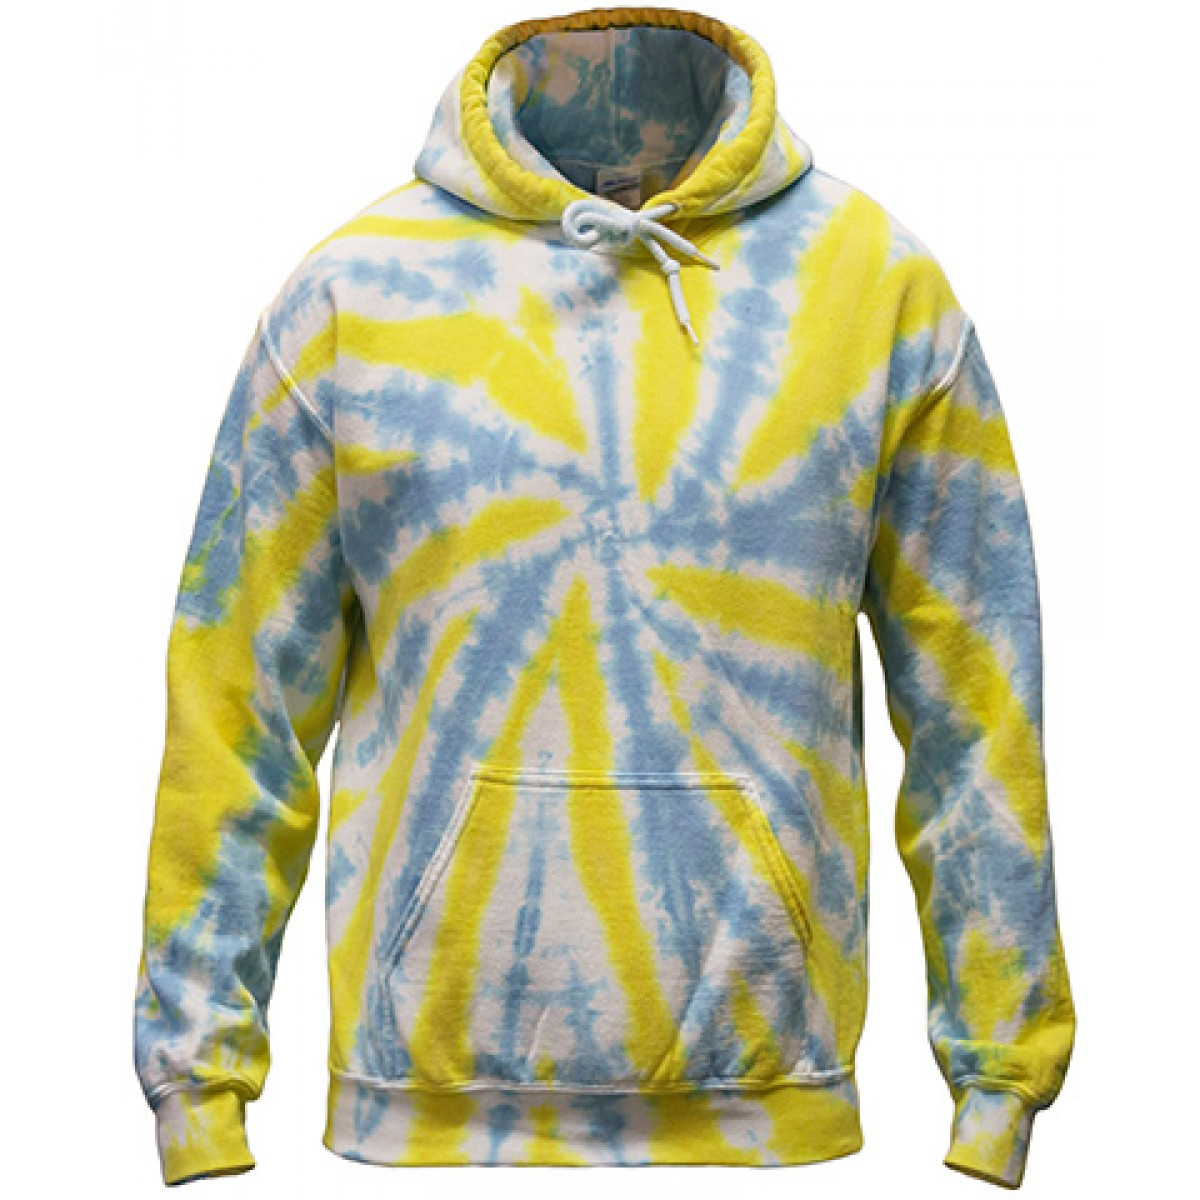 Tie-Dye Pullover Hooded Sweatshirt-Blue/Yellow-XL